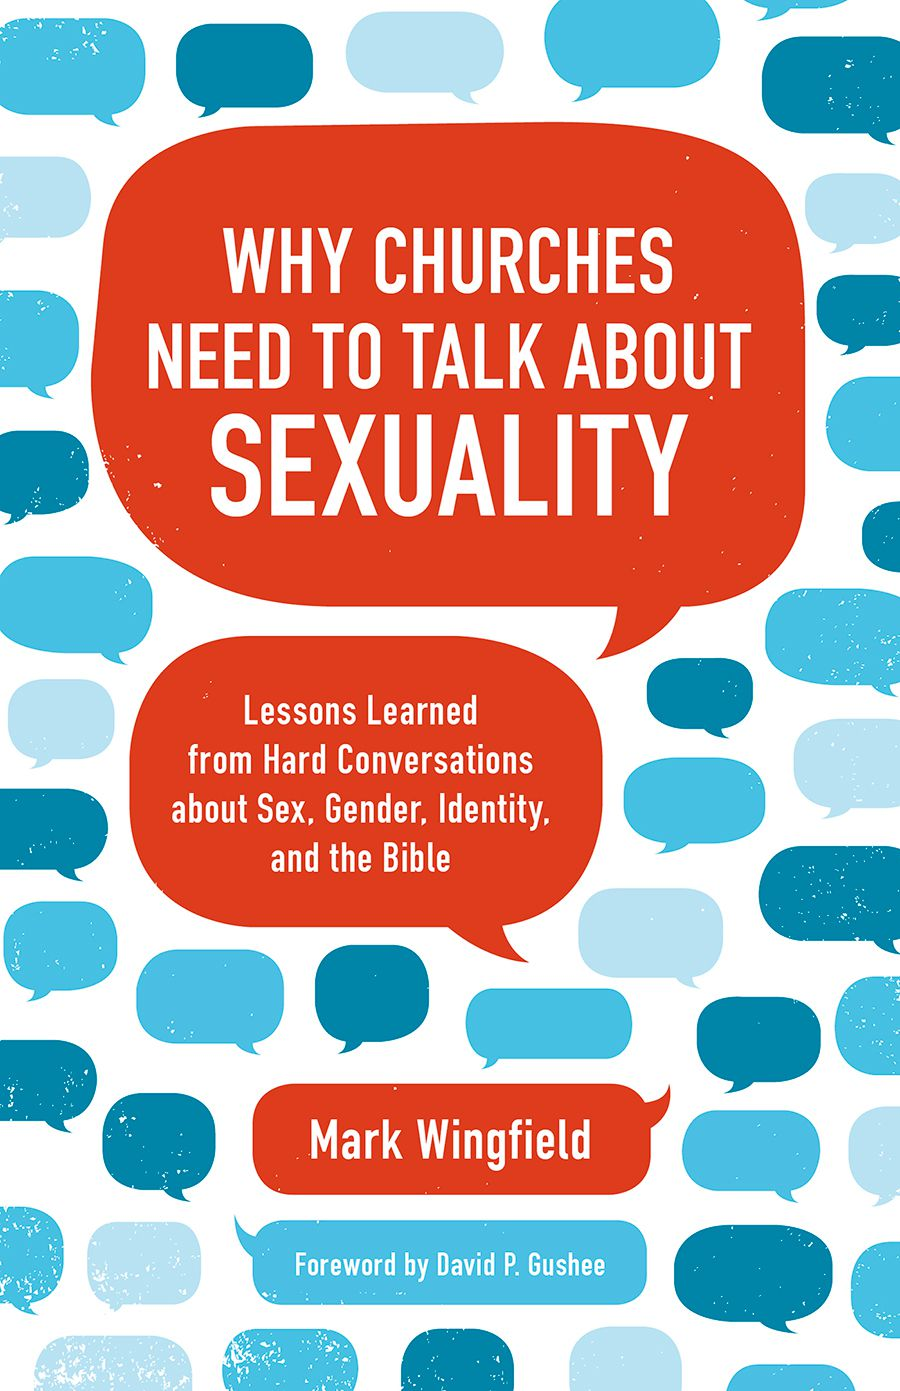 Mark wingfield's new book, which carries a slightly different title than the one he originally proposed